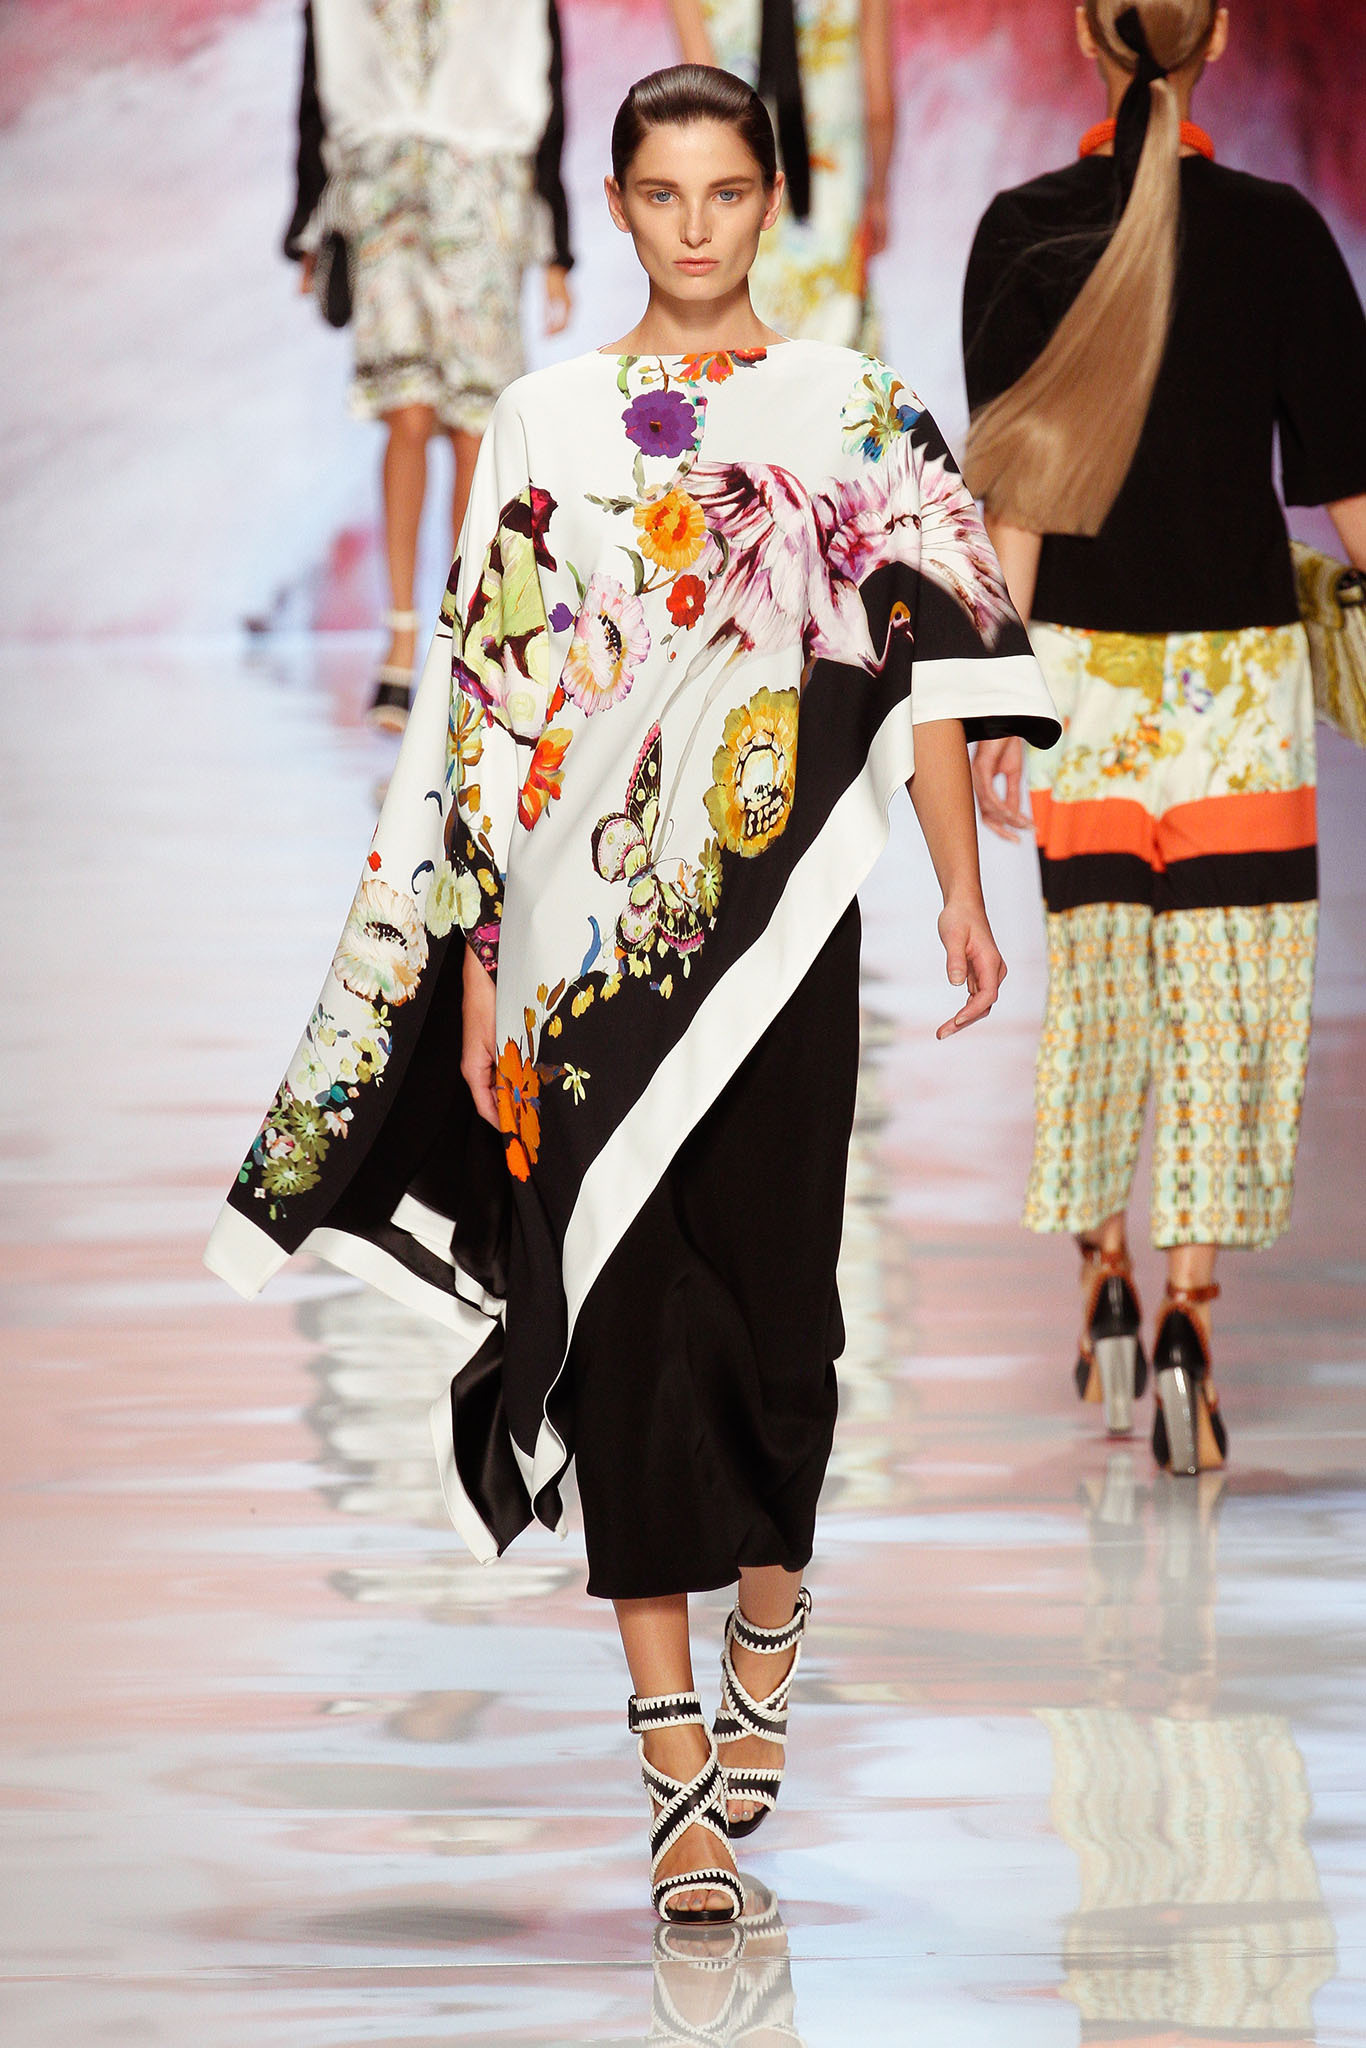 Etro Spring 2013 RTW Collection - Floral fancy